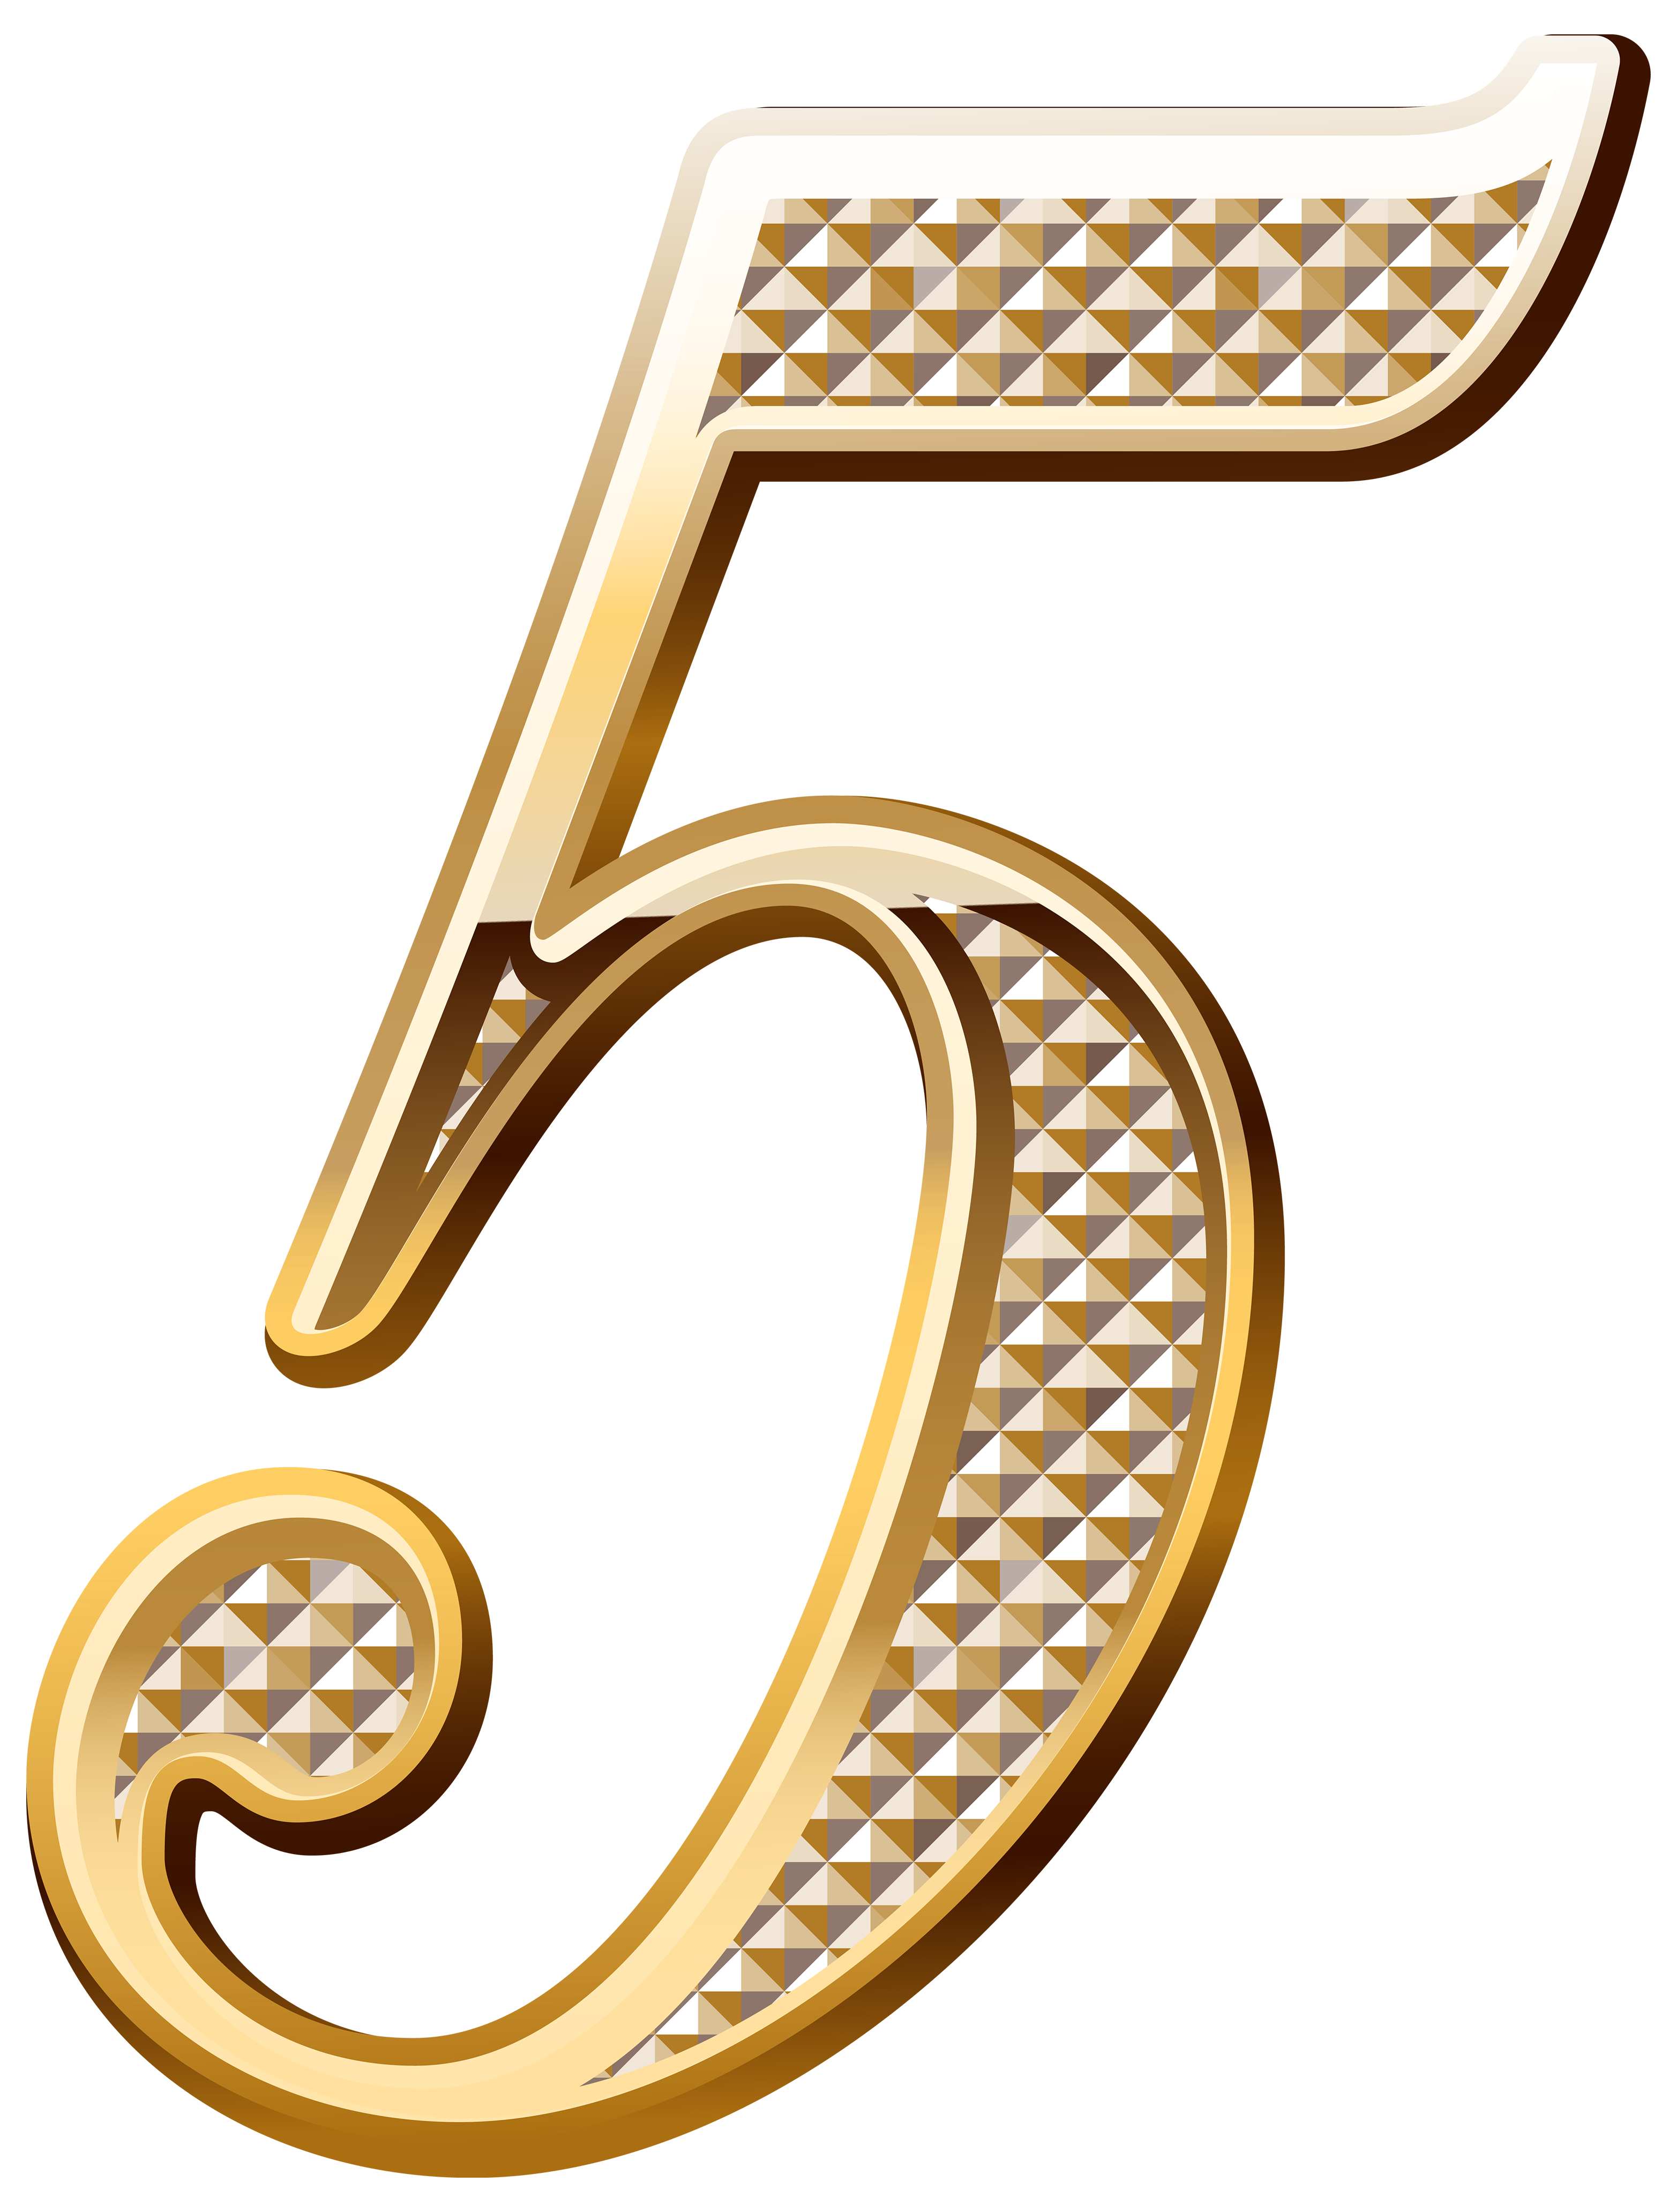 Numbers pinterest images. Number 2 clipart glittery